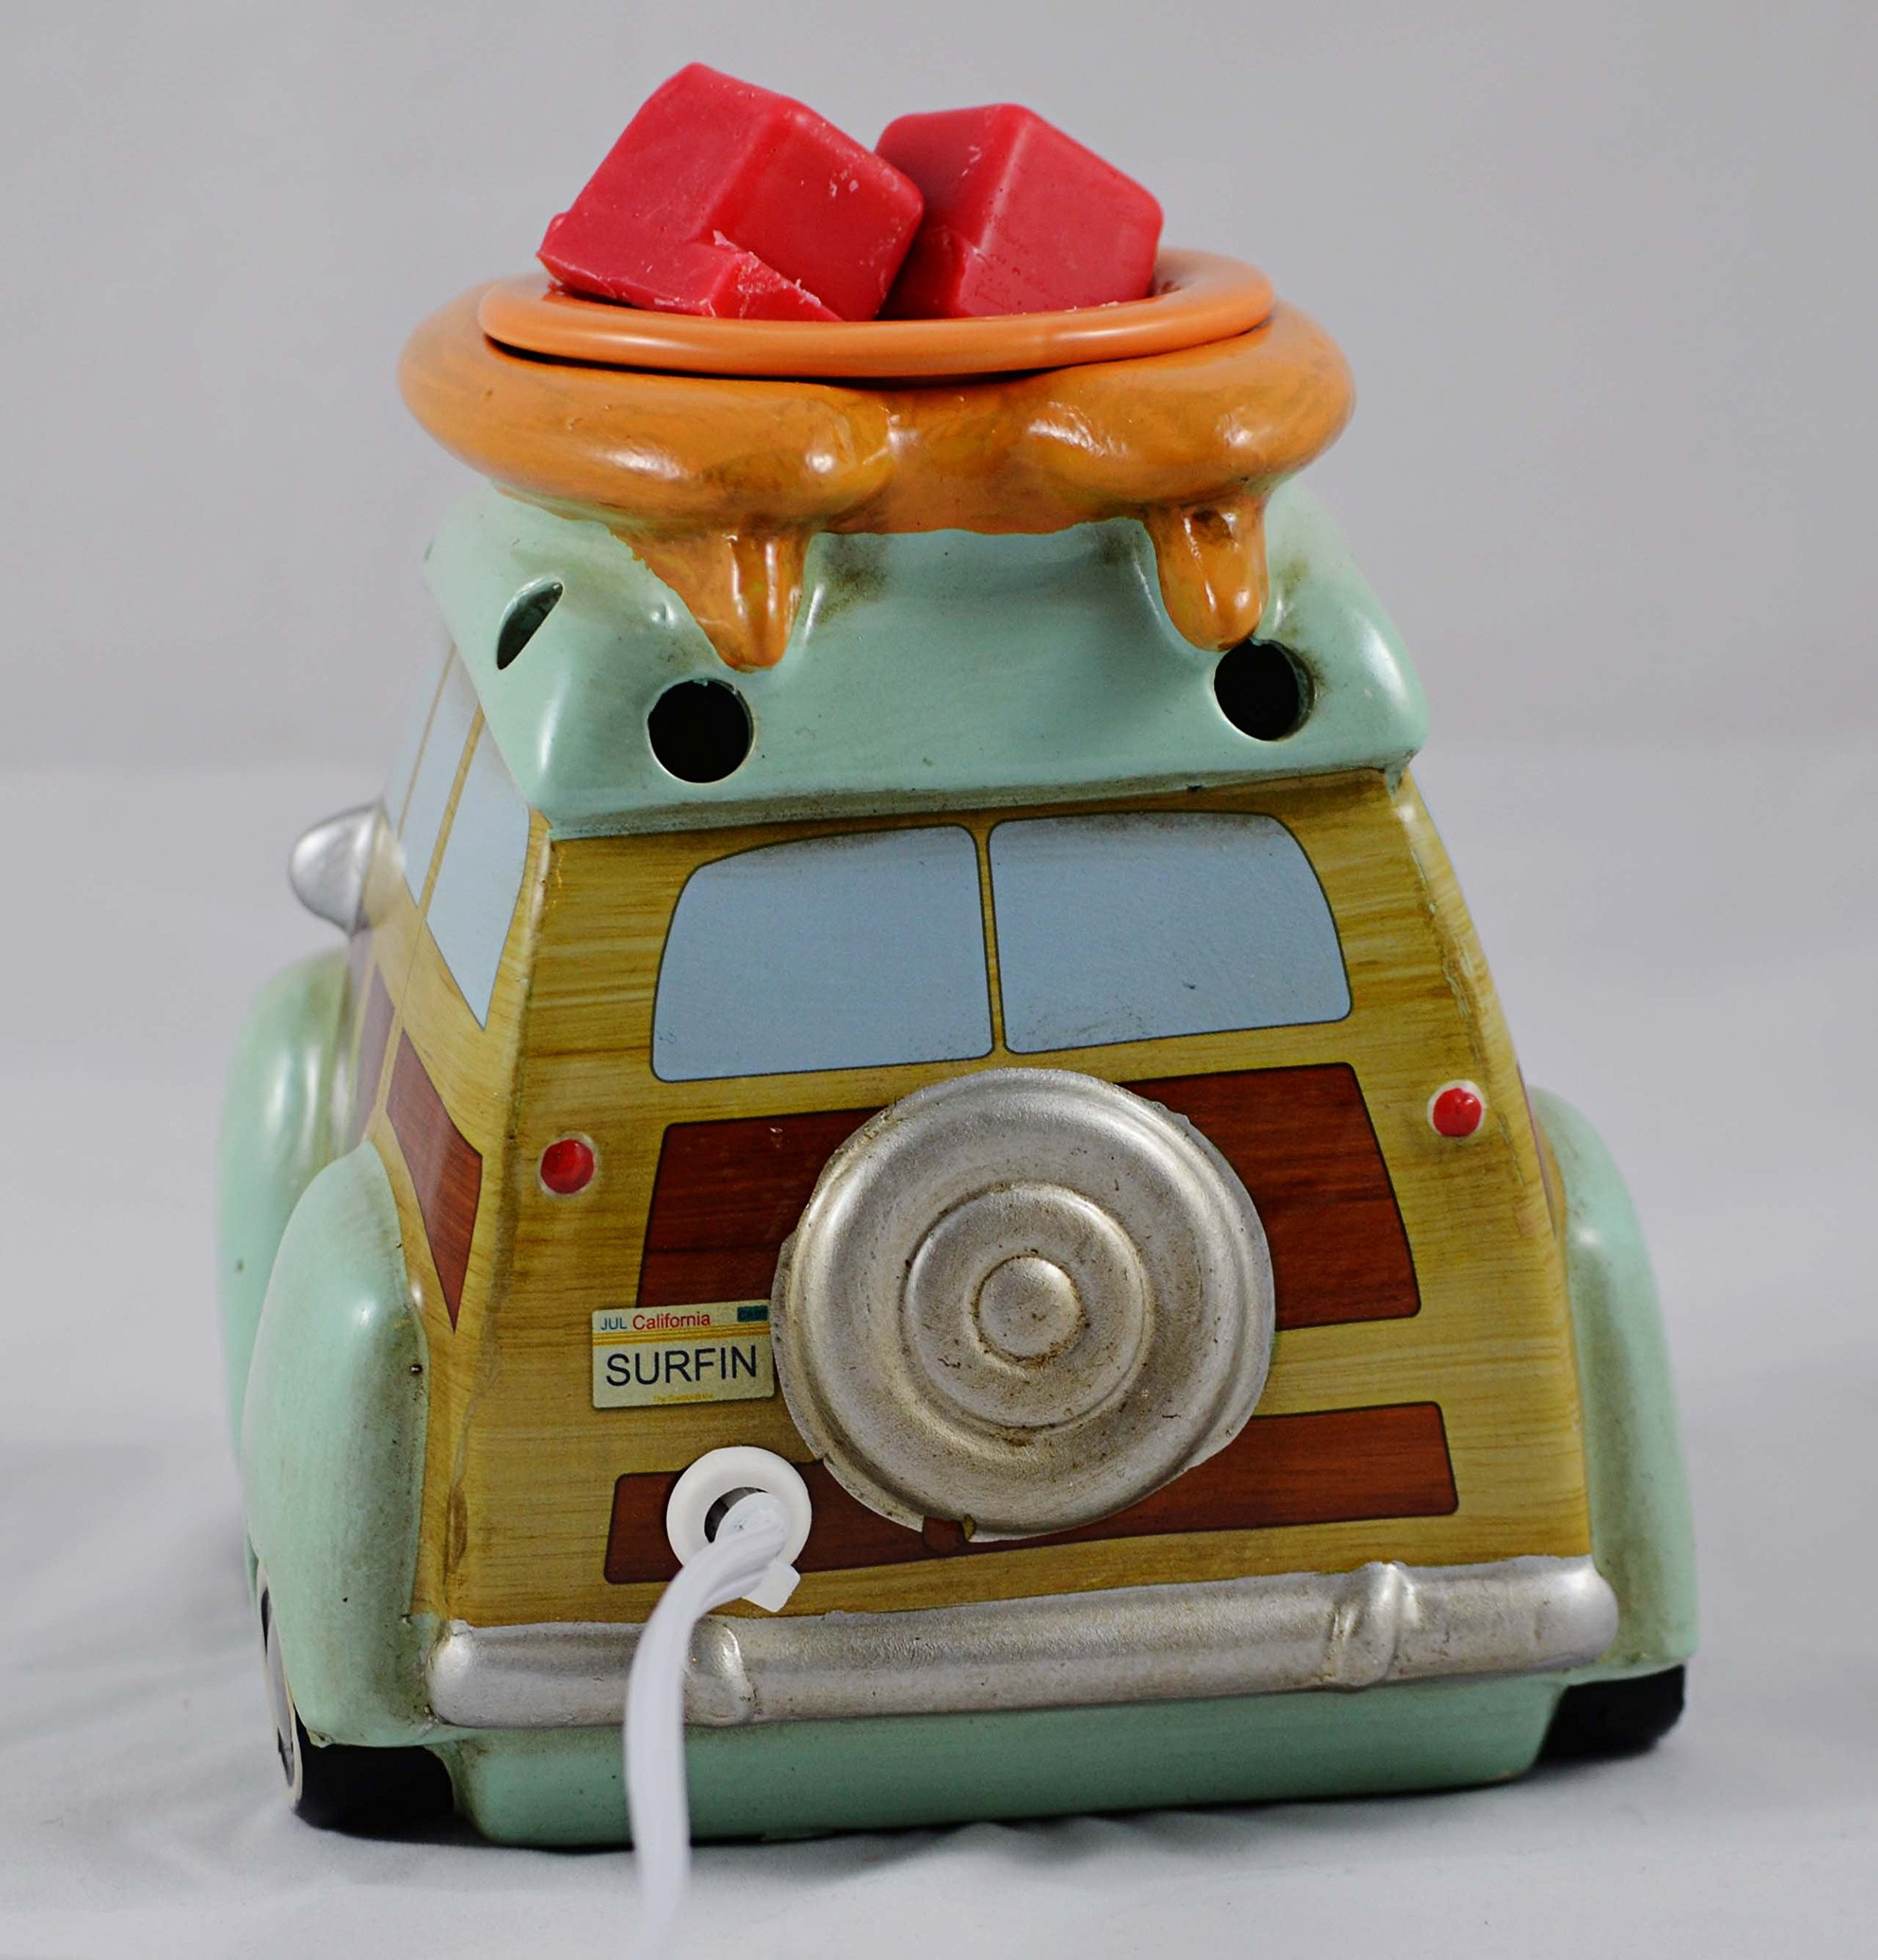 Scentsationals Retro Collection-Surf Woody Wagon - Scented Wax Cube Warmer by ScentSationals (Image #4)